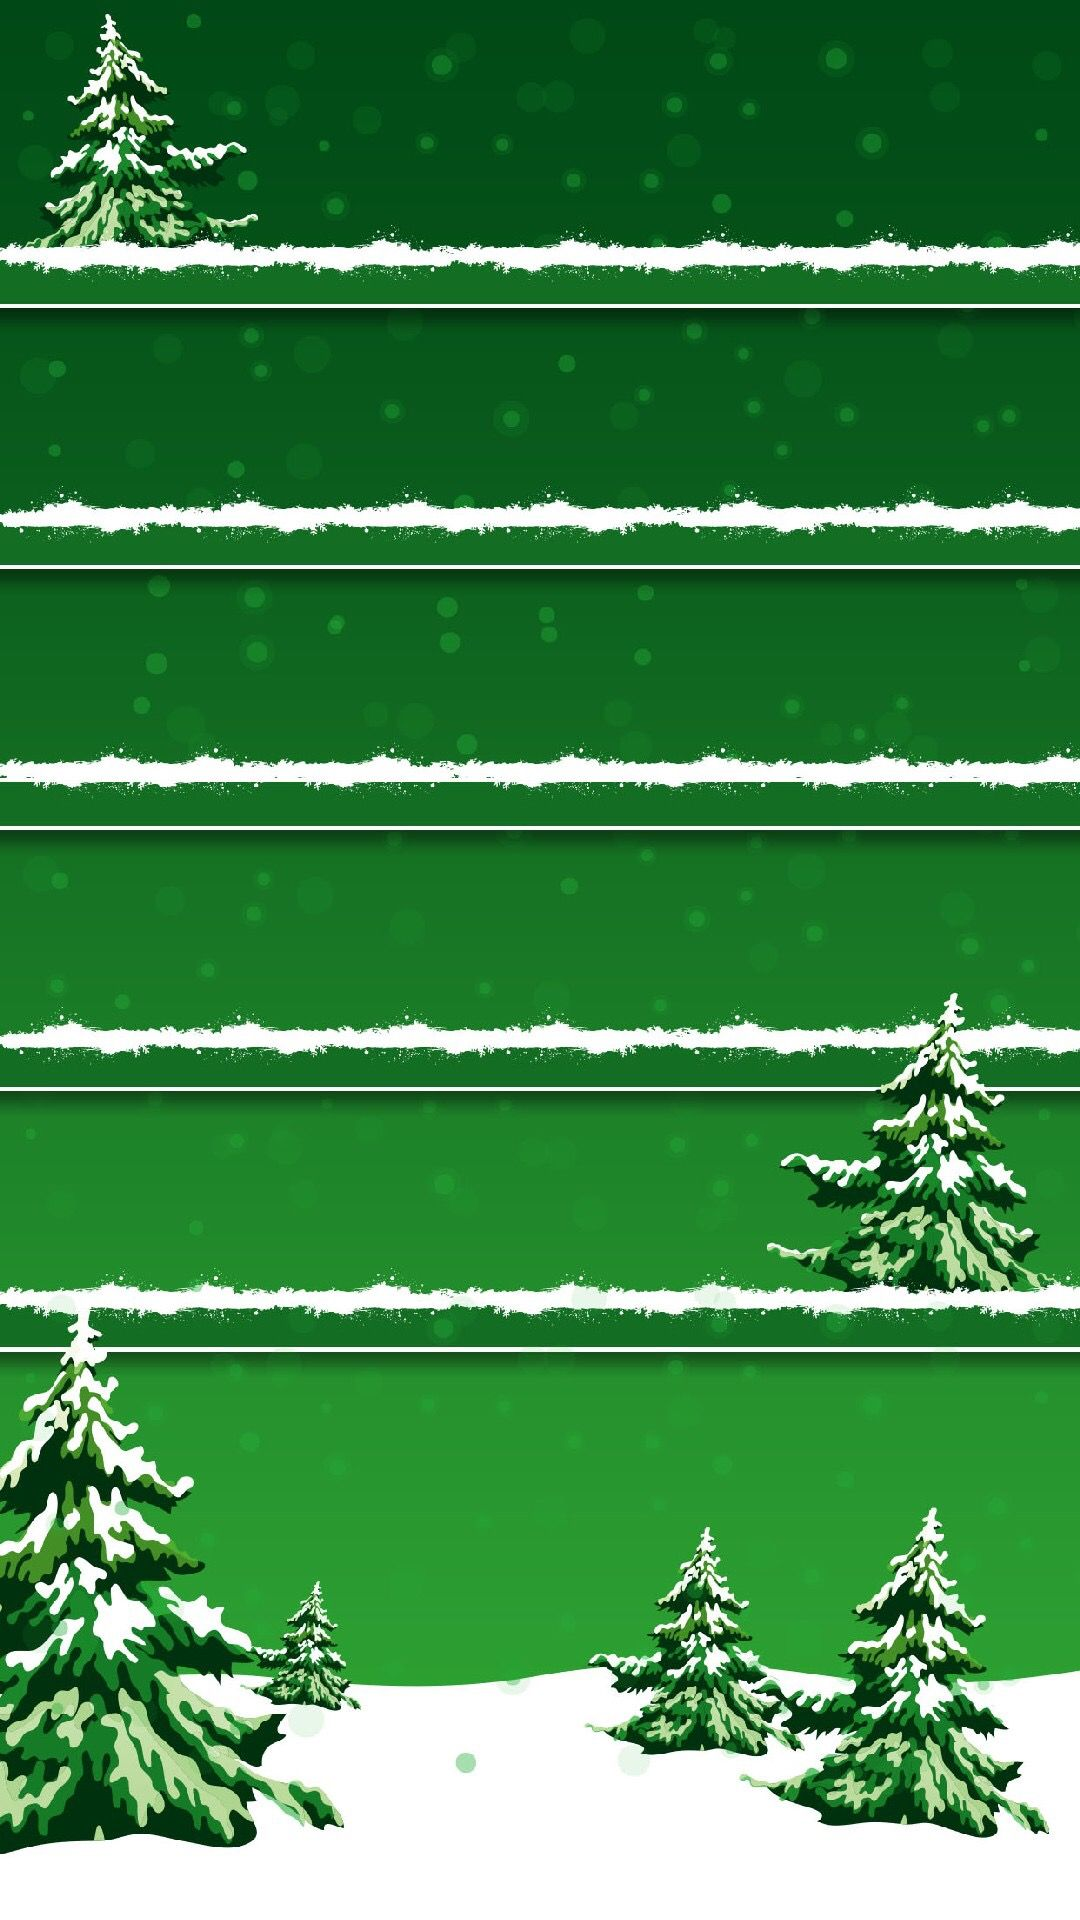 Tap and get the free app shelves fir tree green snow winter tap and get the free app shelves fir tree green snow winter illustration nature hd iphone 6 plus wallpaper voltagebd